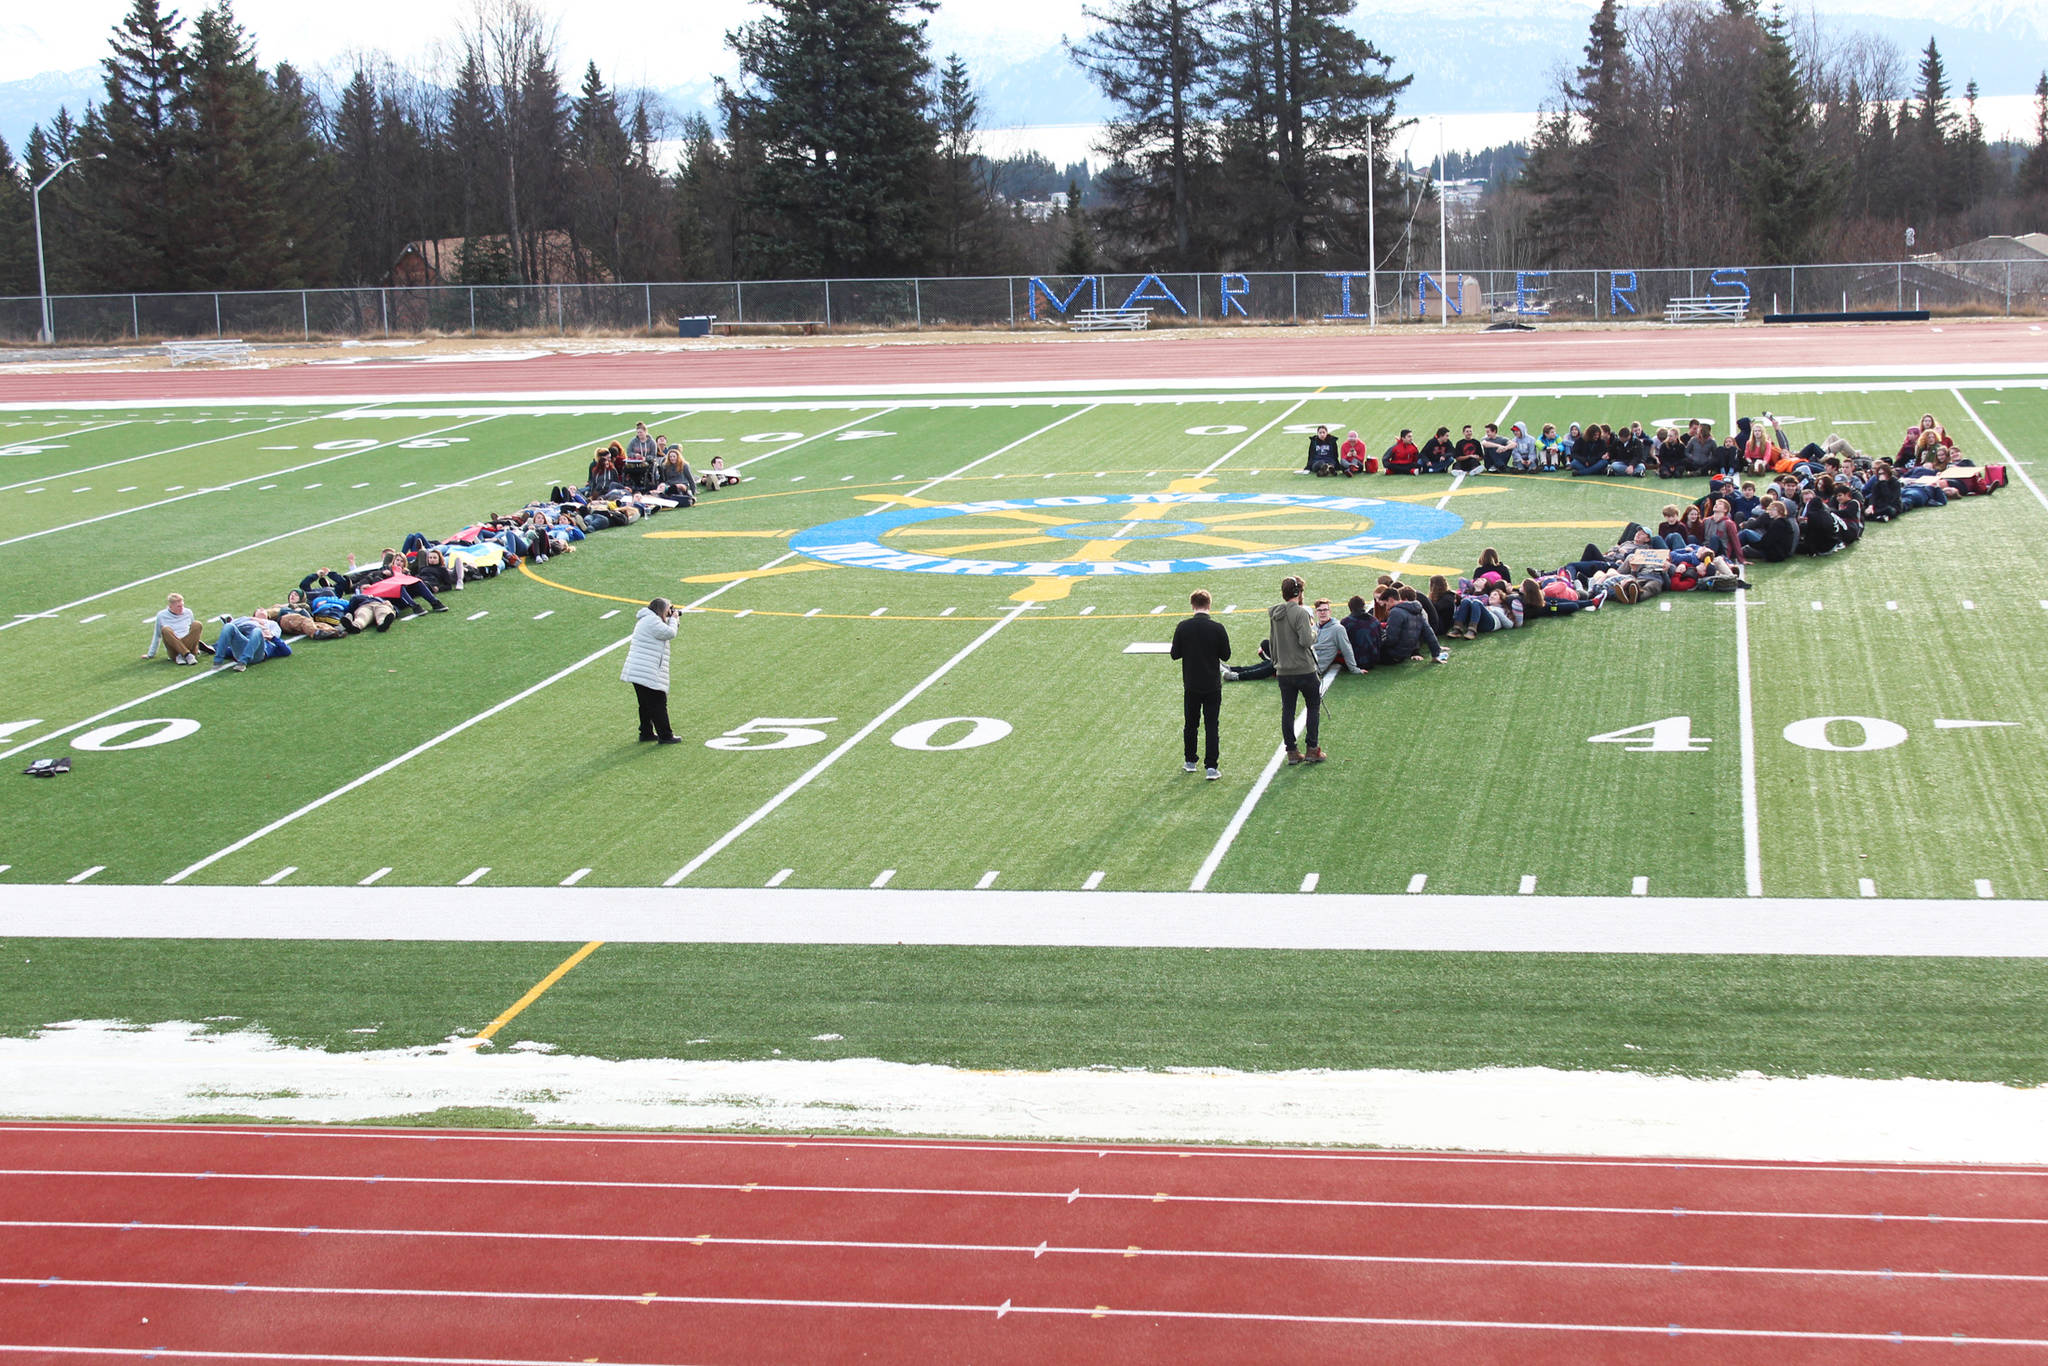 About 100 Homer High School students lie down on the school's football field to form the number 17 on Wednesday, Feb. 21, 2018, to honor the students who were killed in the Feb. 14 mass shooting in Parkland, Florida. The Homer students staged a walkout at noon to advocate for safer schools. (Photo by Megan Pacer/Homer News)